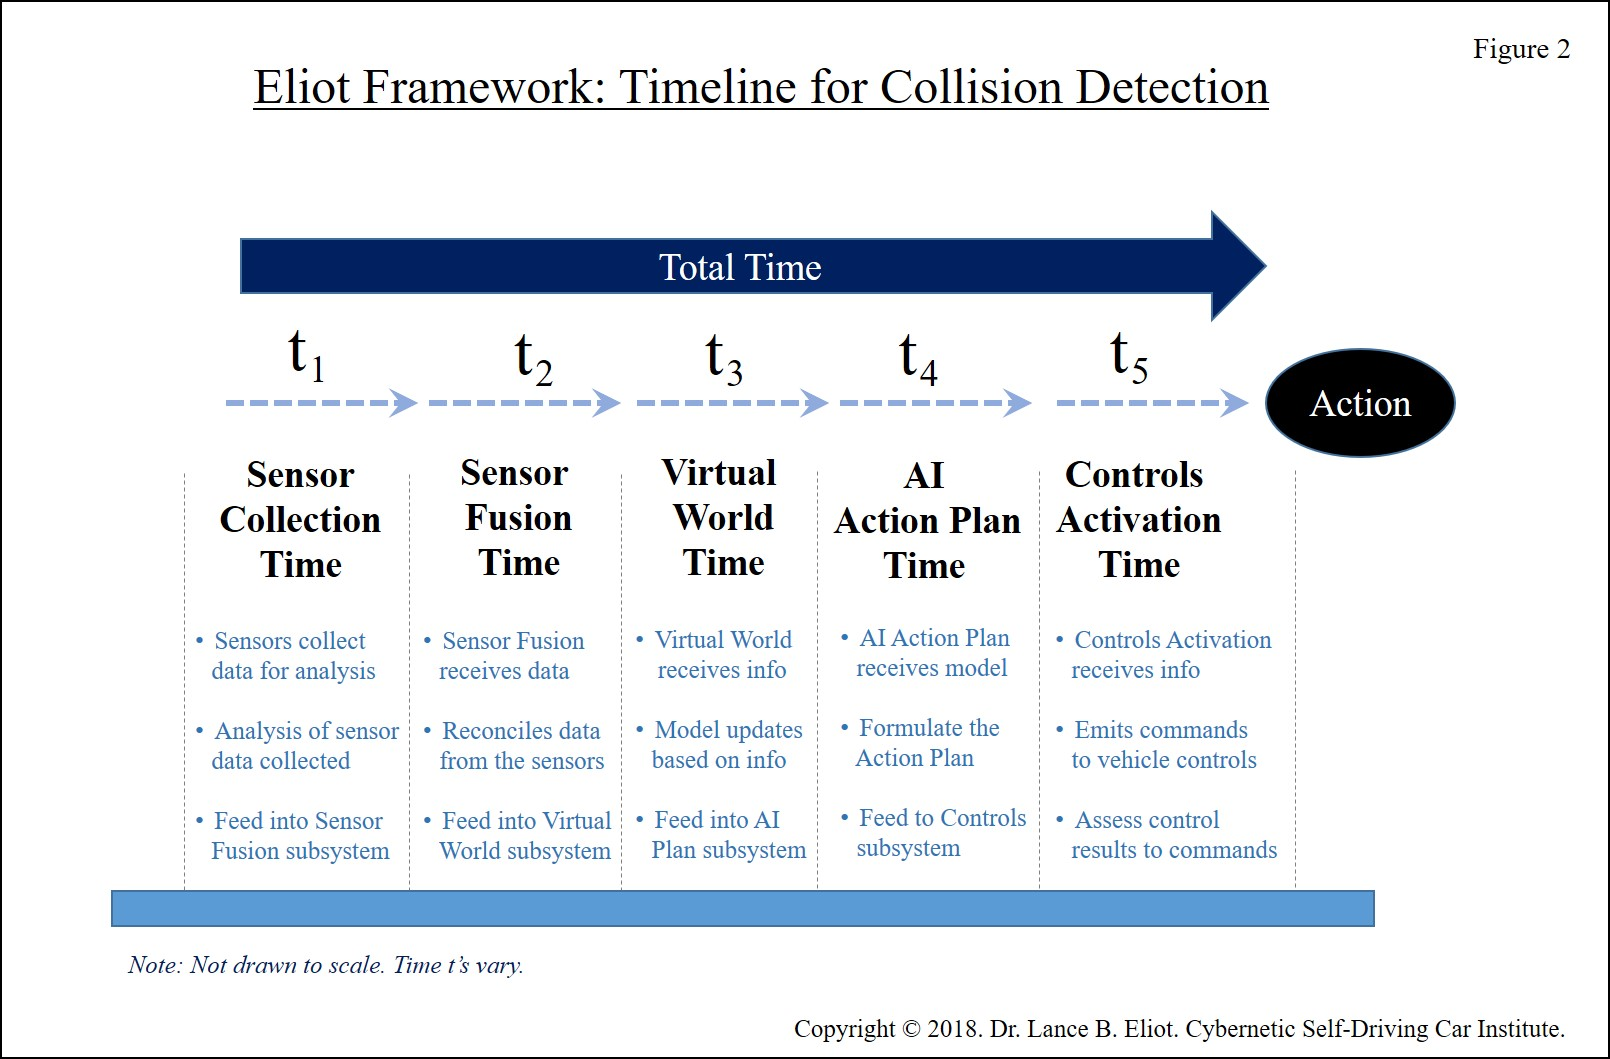 - Lance Eliot Uber Incident Figure 2 300 DPI - Initial Forensic Analysis of the Uber Self-Driving Car Incident in Arizona